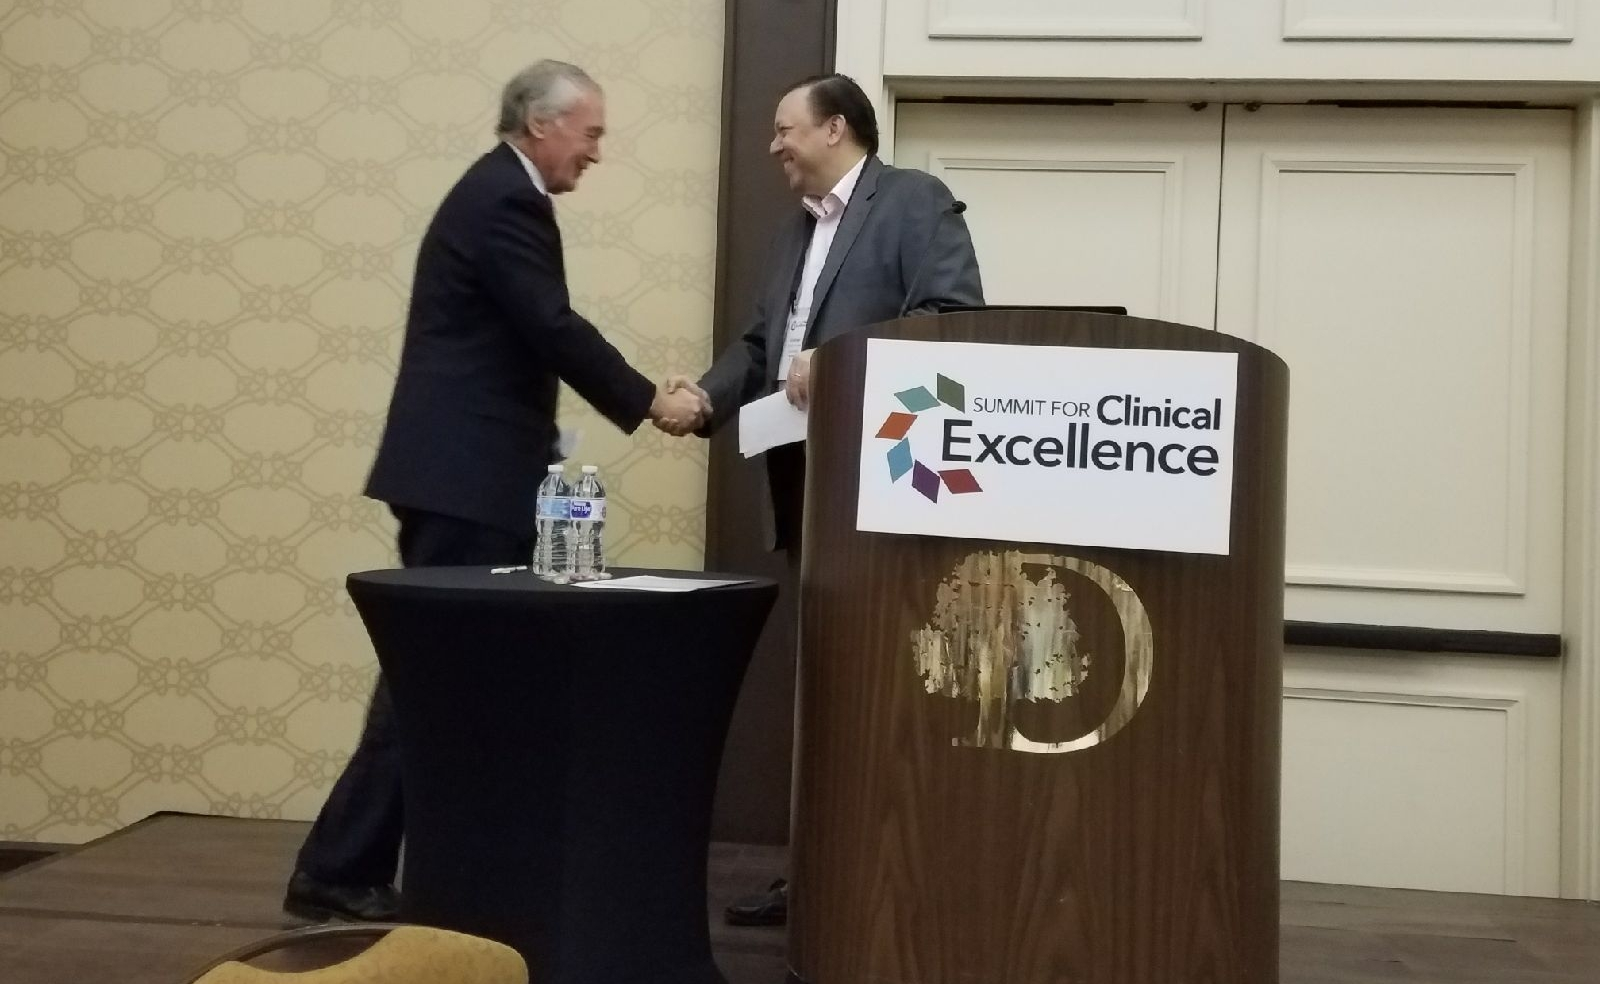 Andrew Kessler welcomes Senator Ed Markey to the New England Summit for Clinical Excellence